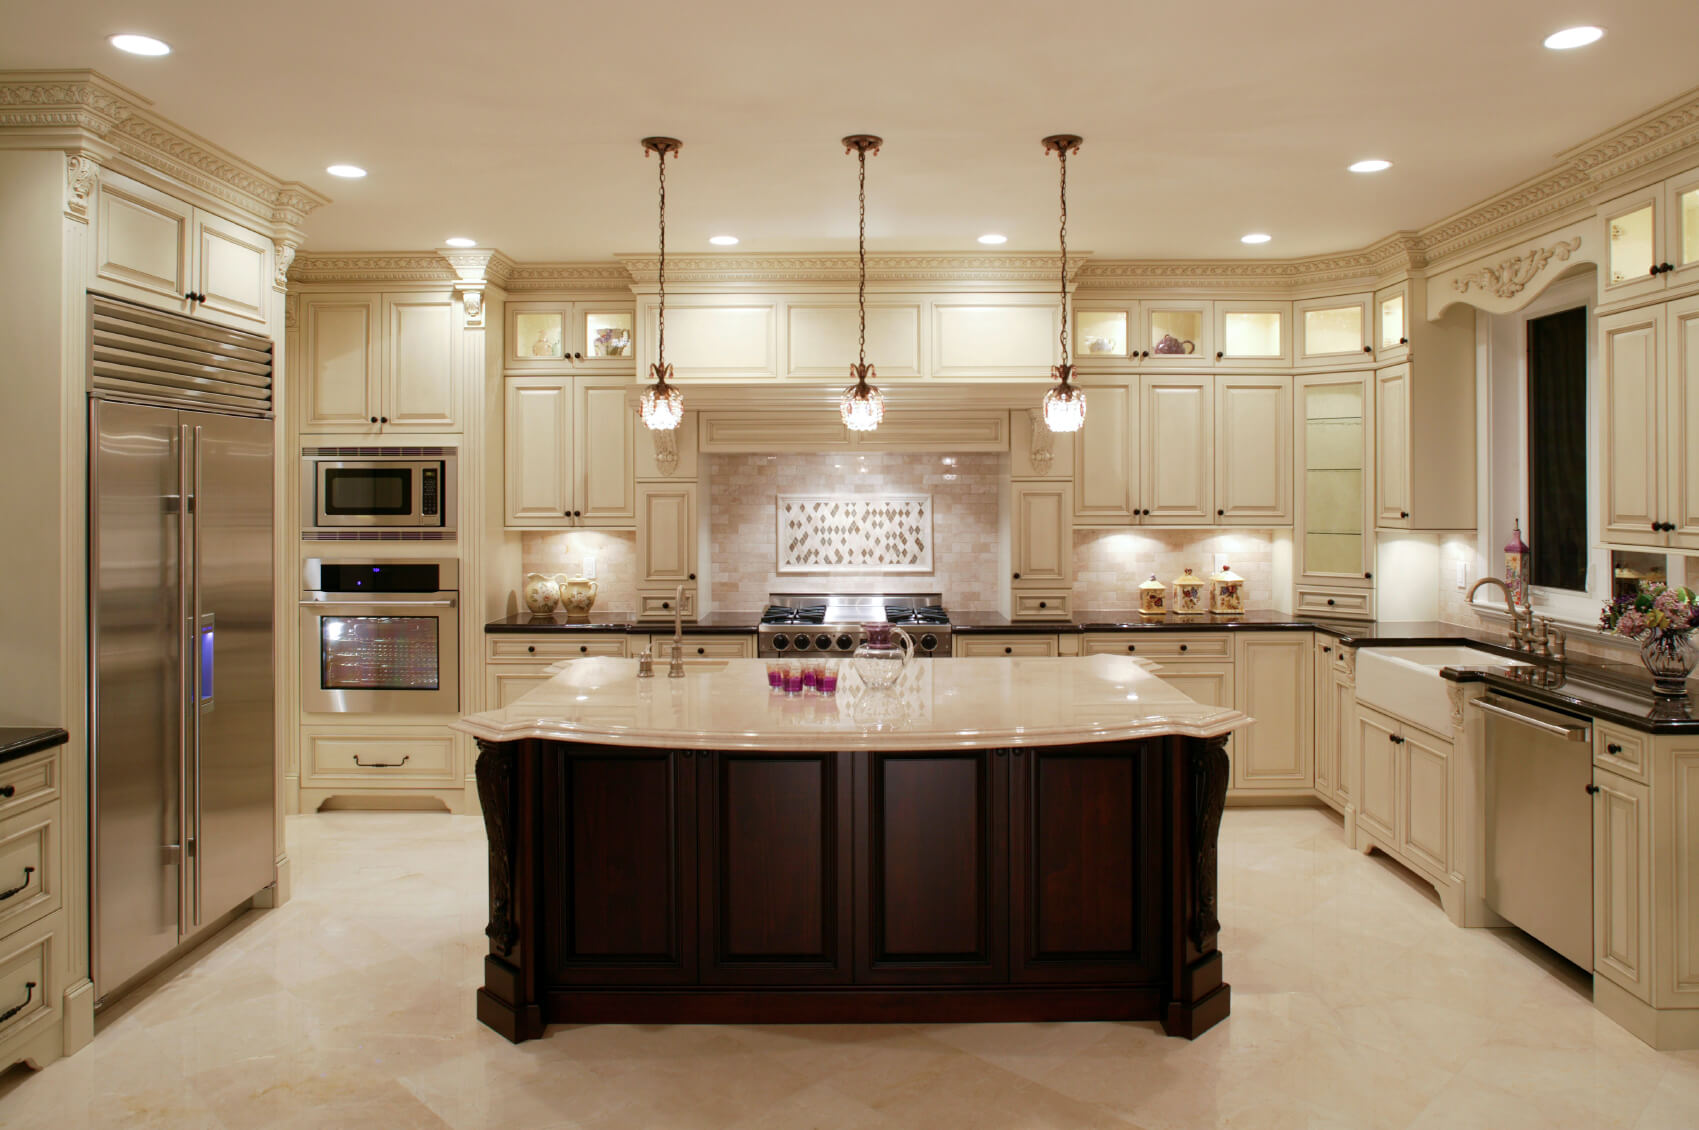 Uncategorized Kitchens Designs 41 luxury u shaped kitchen designs layouts photos this centers around a large dark wood island with classic marble countertop